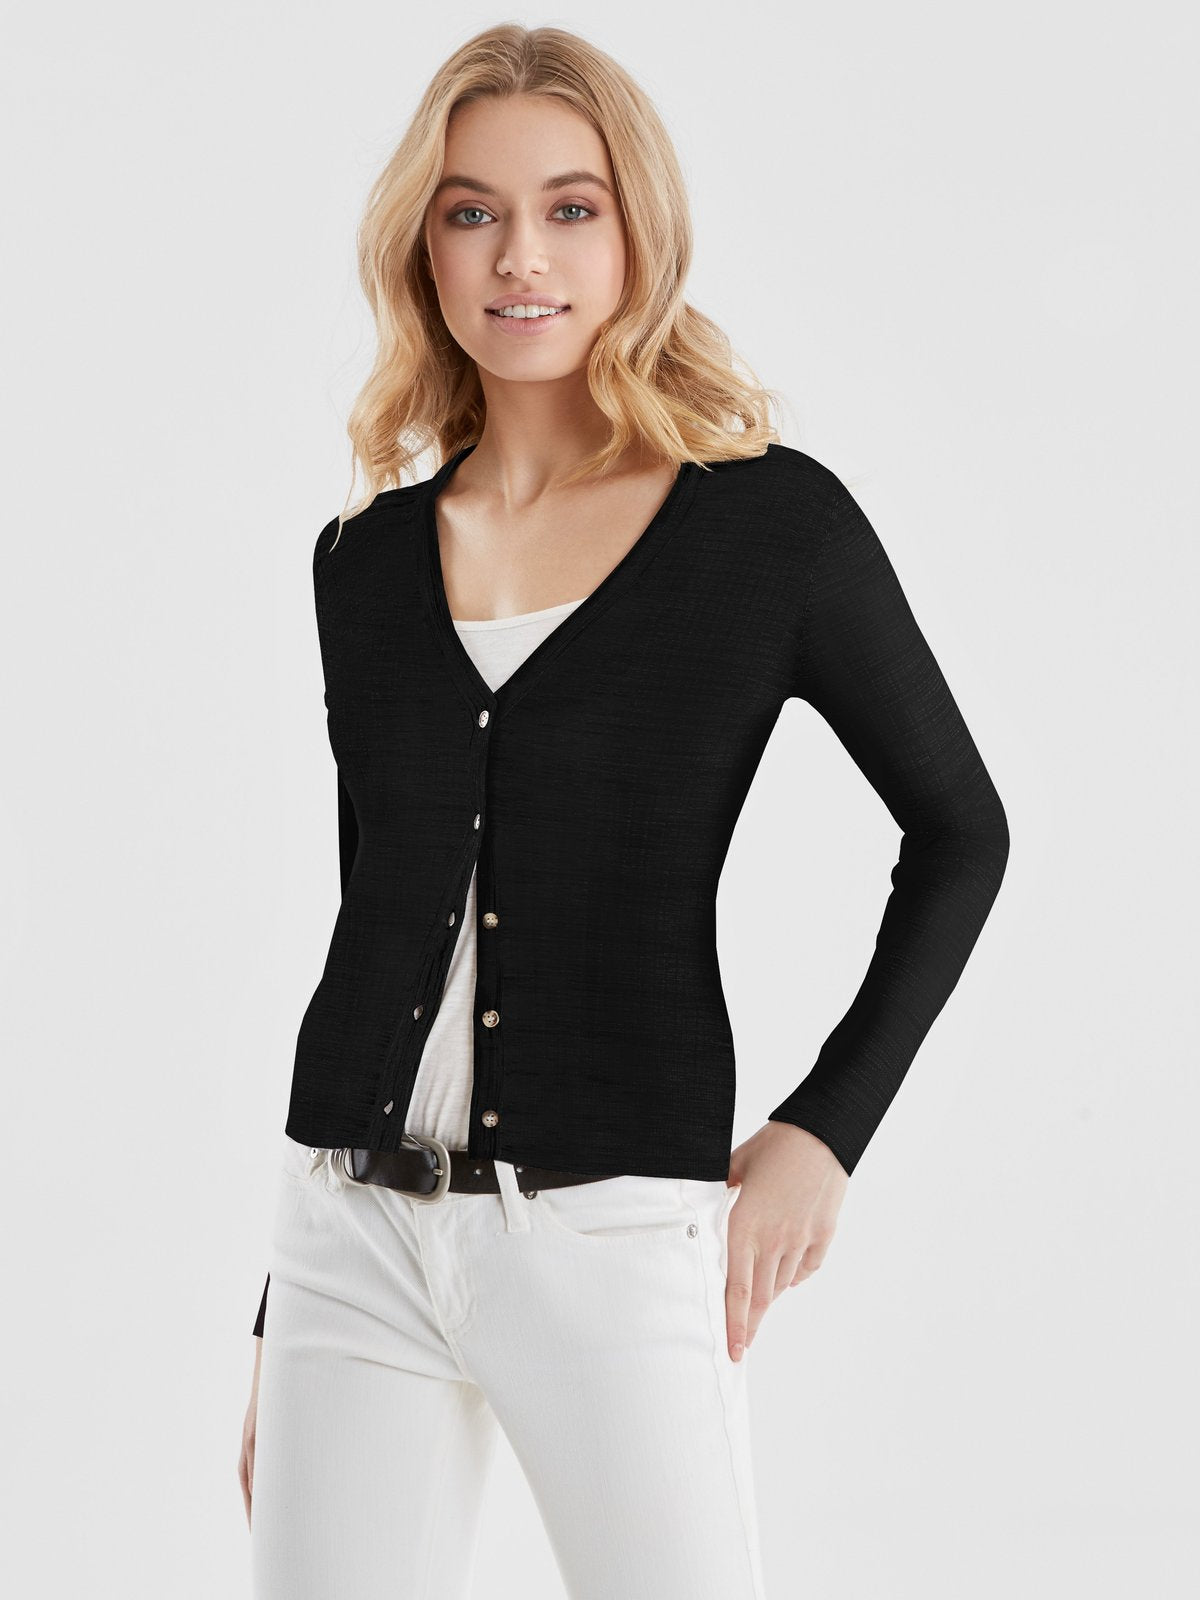 The Kelly: Fitted Rib Knit Cardigan - Black